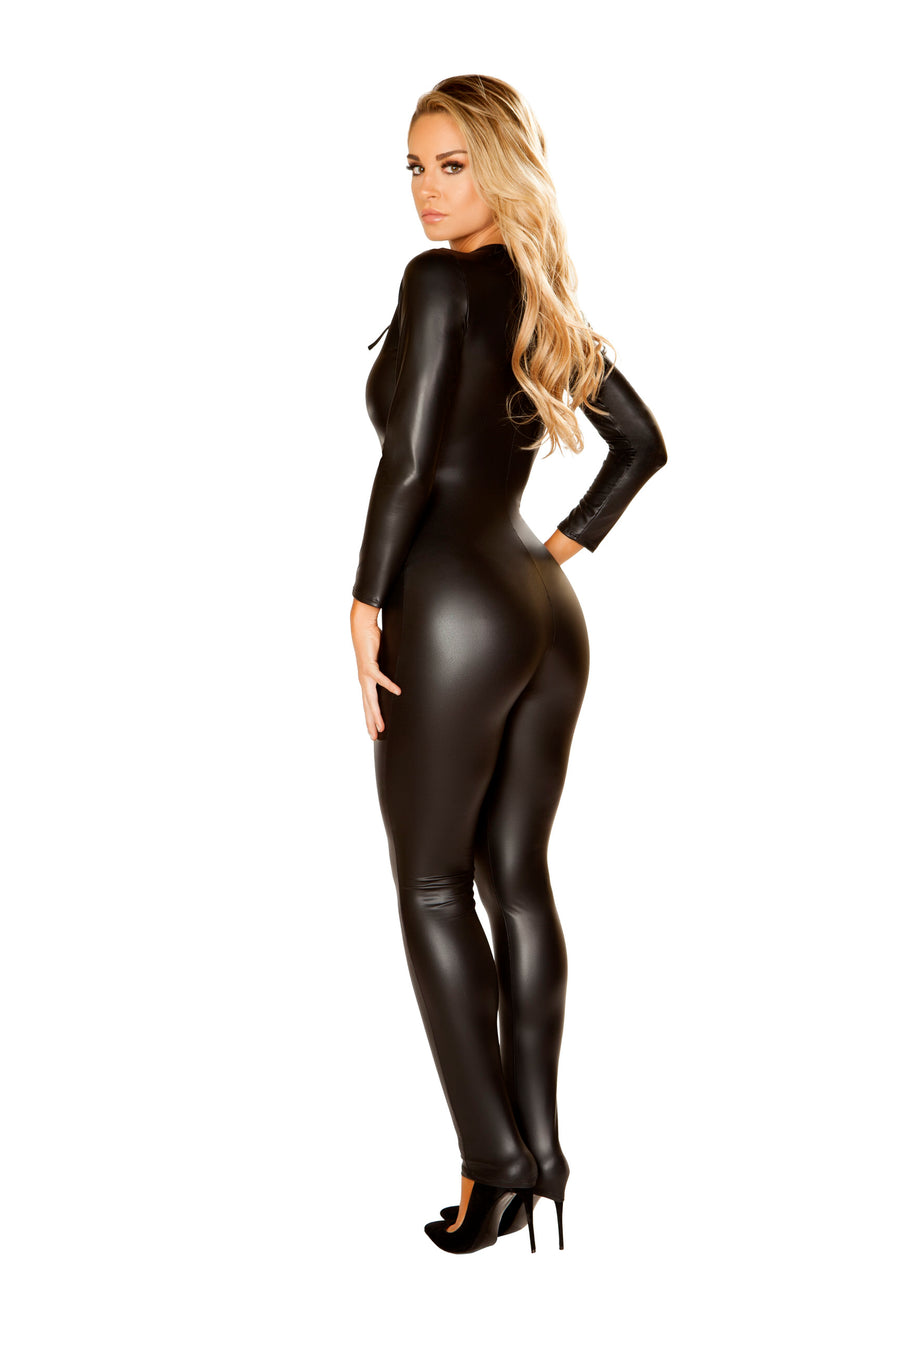 4862 - Roma Costume 1pc Multi Purpose Black Catsuit Bodysuit